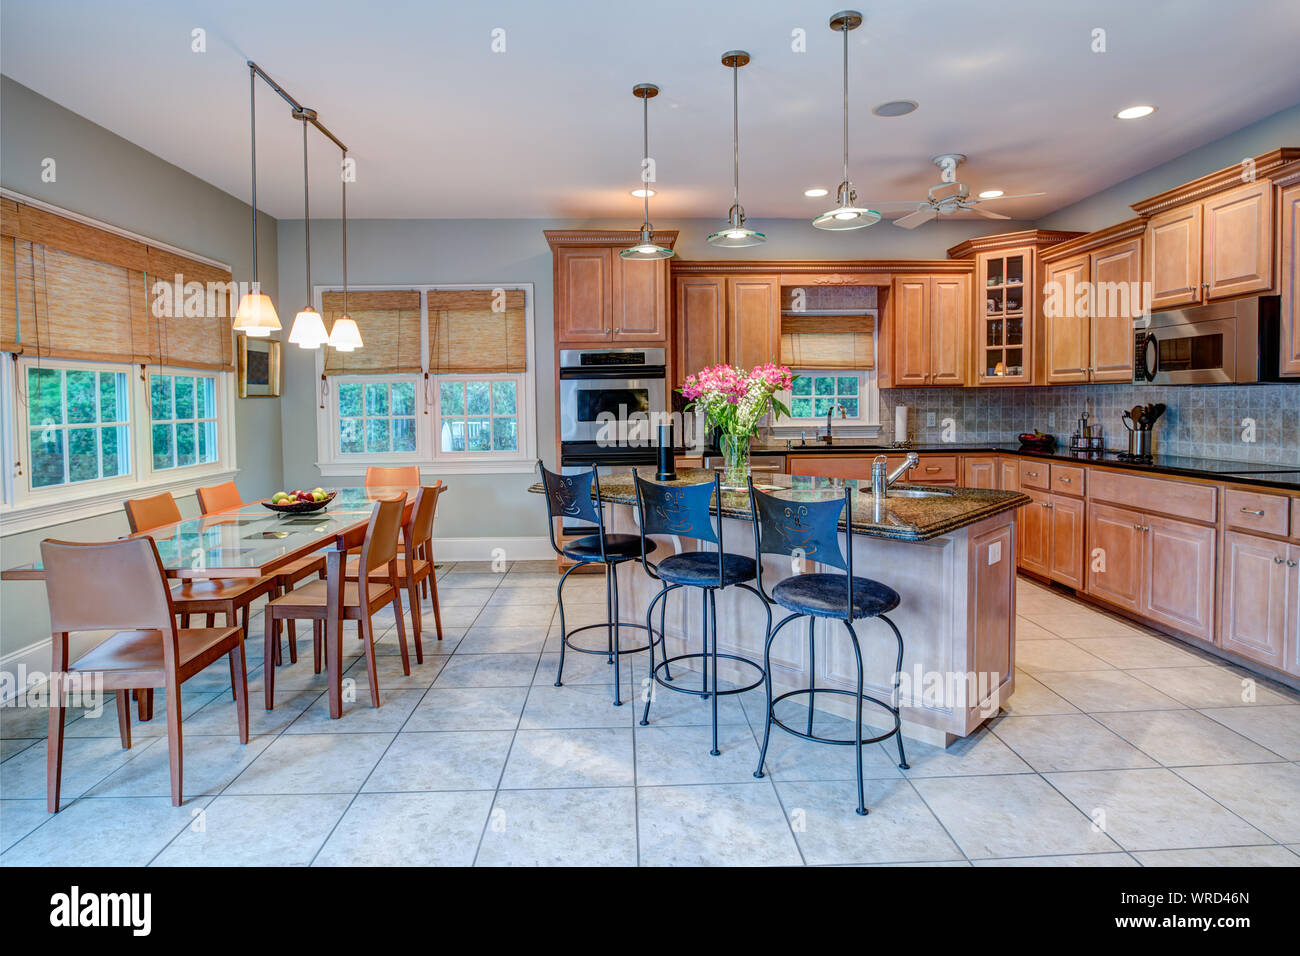 Open Concept Kitchen And Dining Room Combination With Windows Stock Photo Alamy